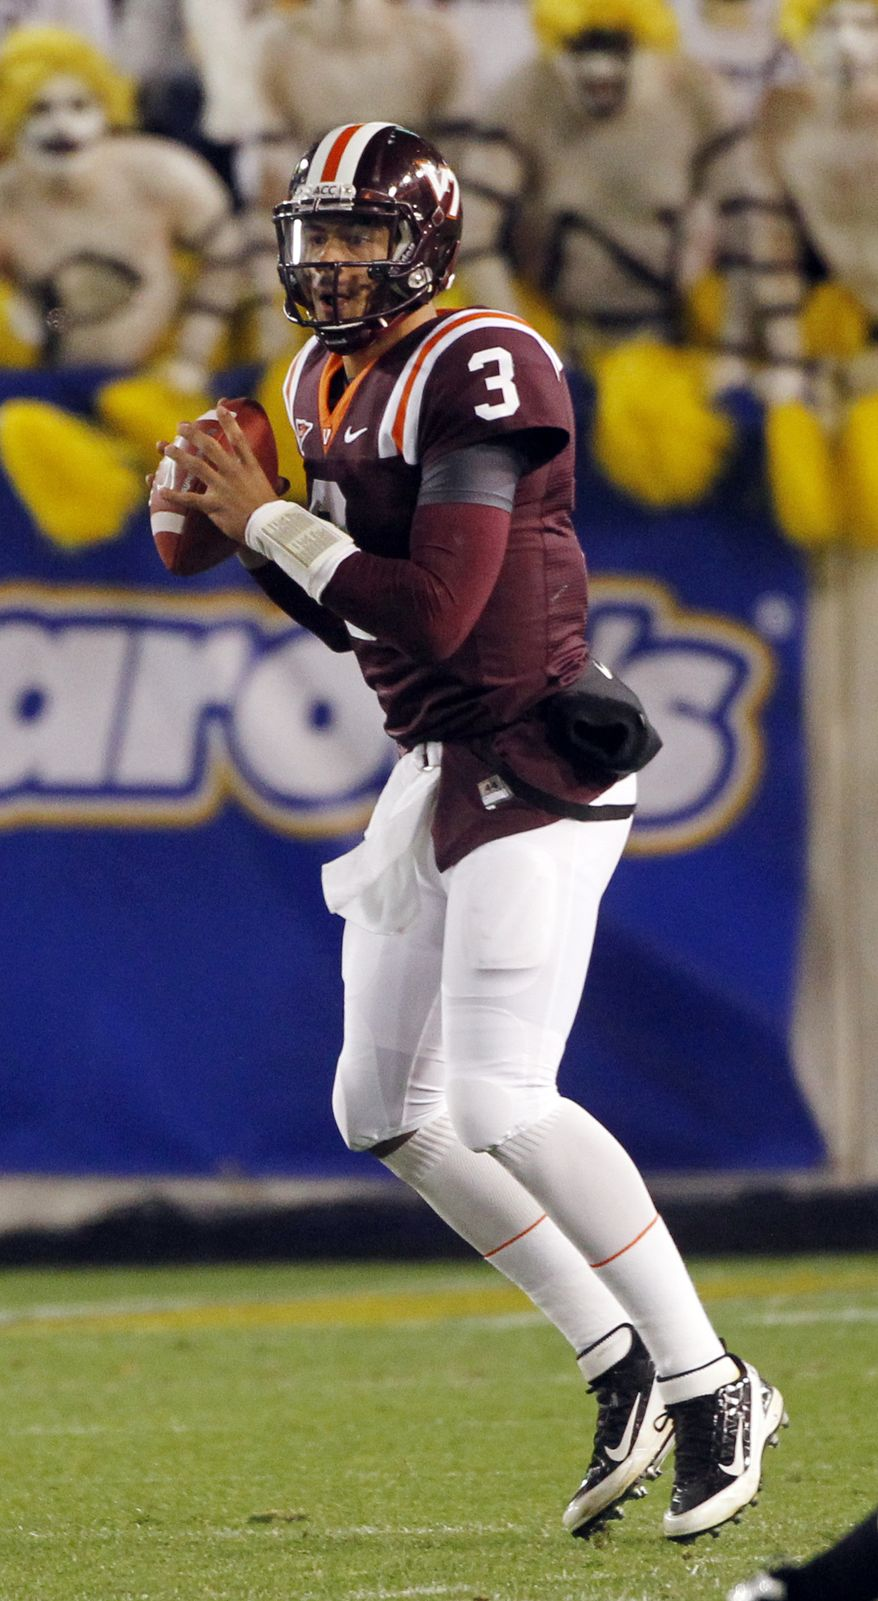 Virginia Tech quarterback is a dual threat, totaling 2,338 yards and 16 touchdowns in the air and 387 yards and nine touchdowns on the ground. (AP Photo/John Bazemore)